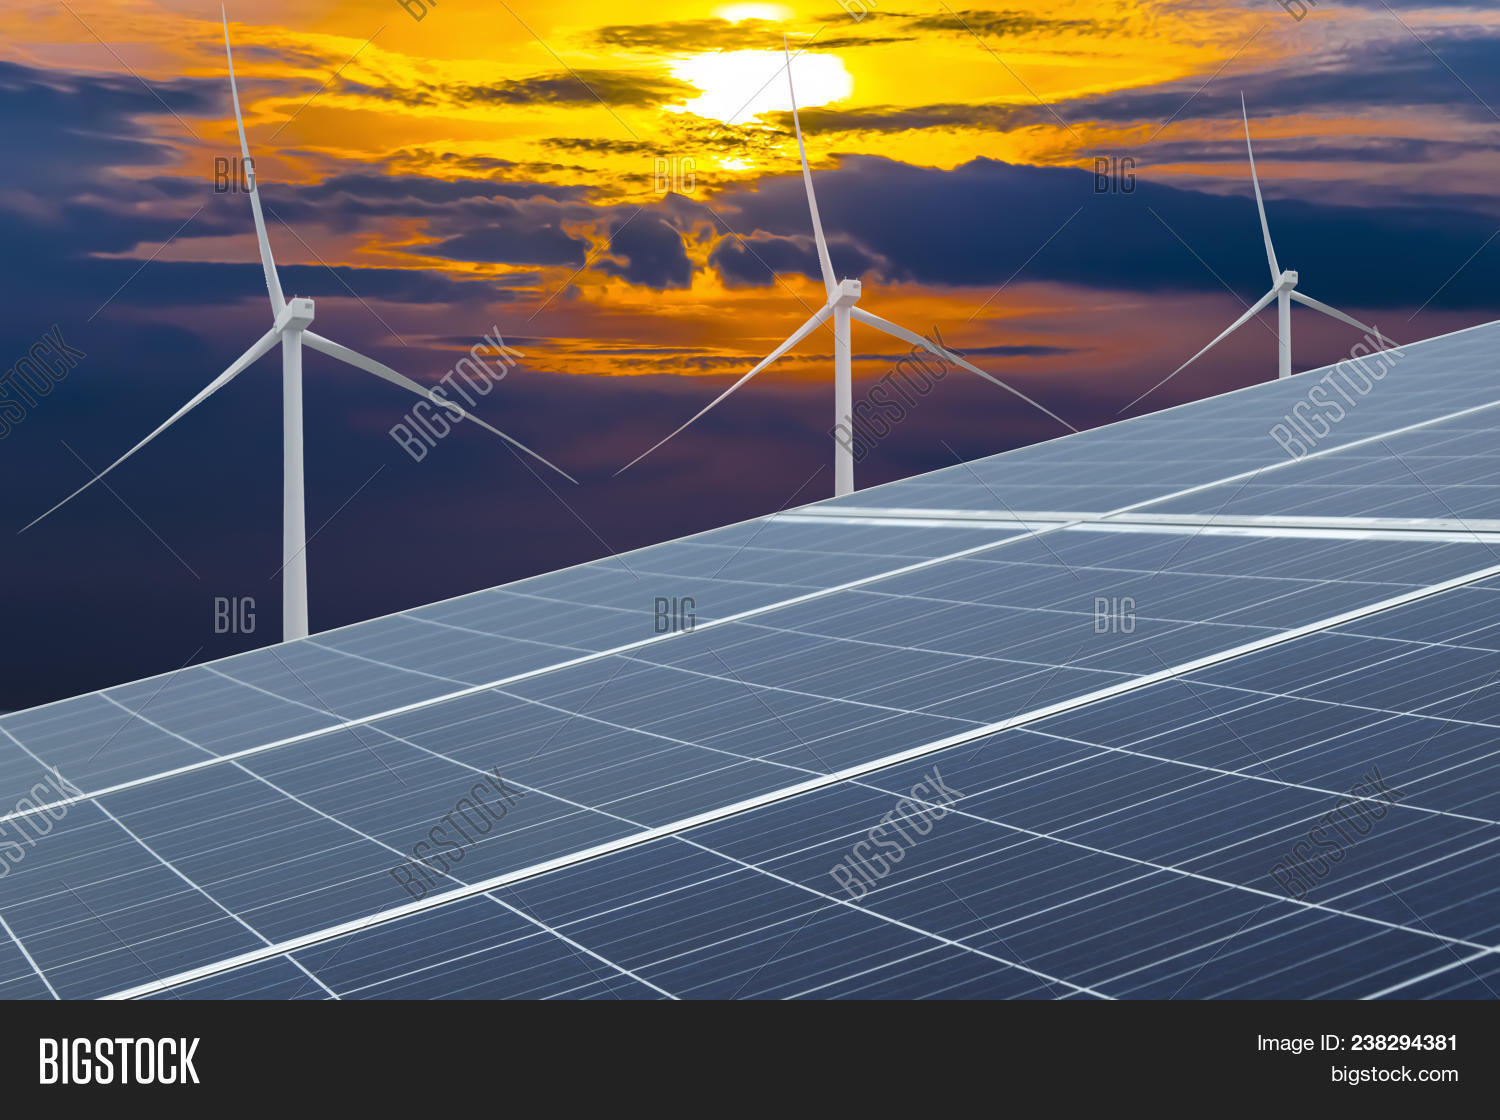 Solar Cells Wind Image Photo Free Trial Bigstock Generating Electricity And Turbines In Power Station Alternative Energy From Nature